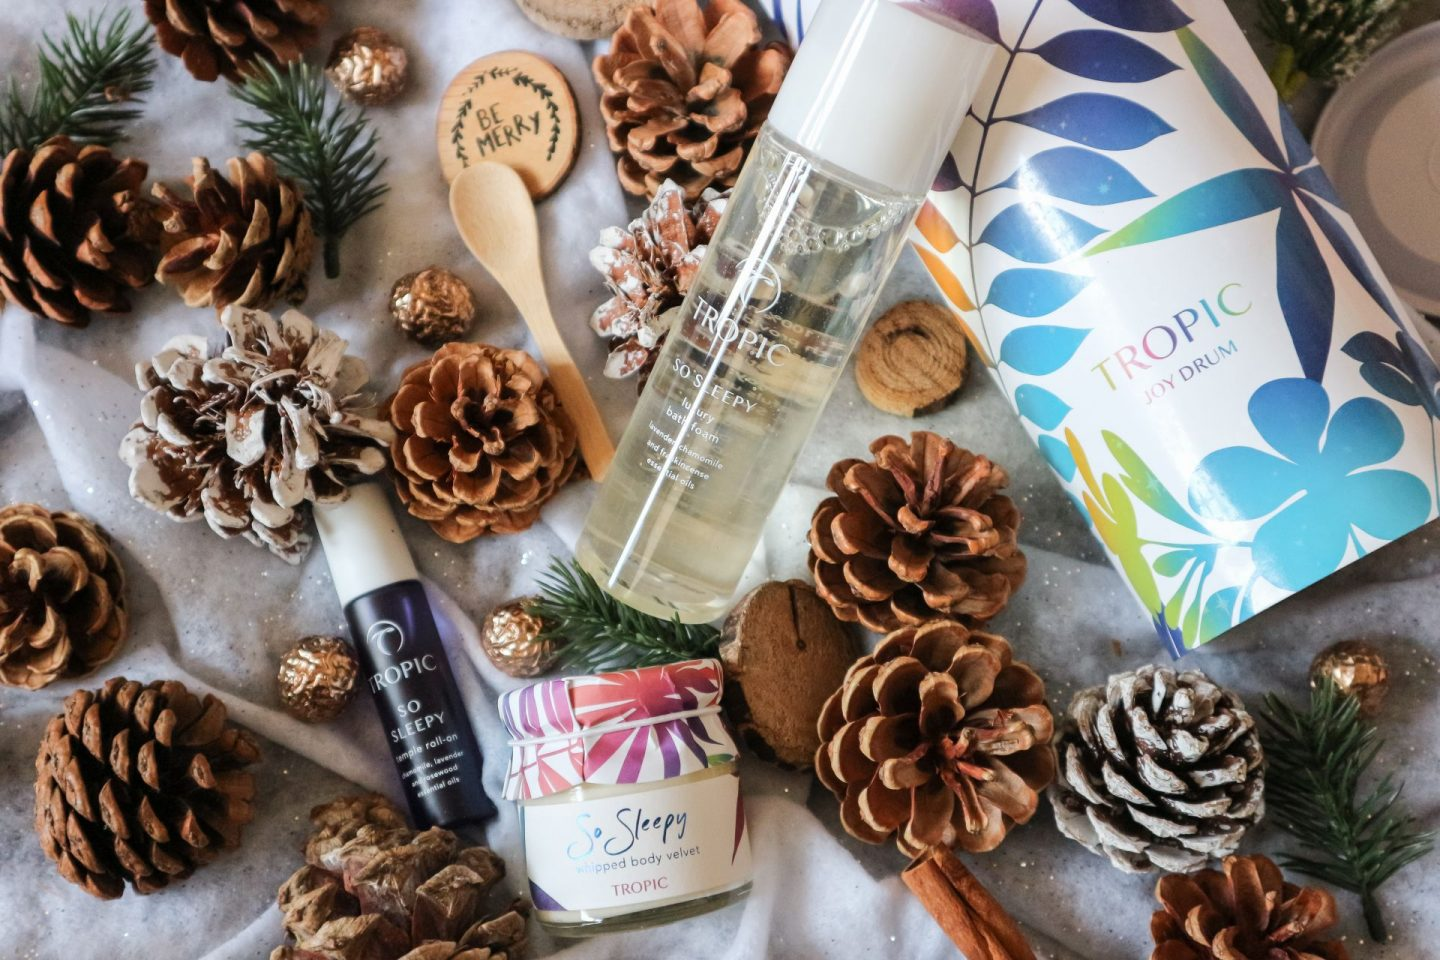 Tropic Skincare Joy Drum: Unwind Me Gift Set